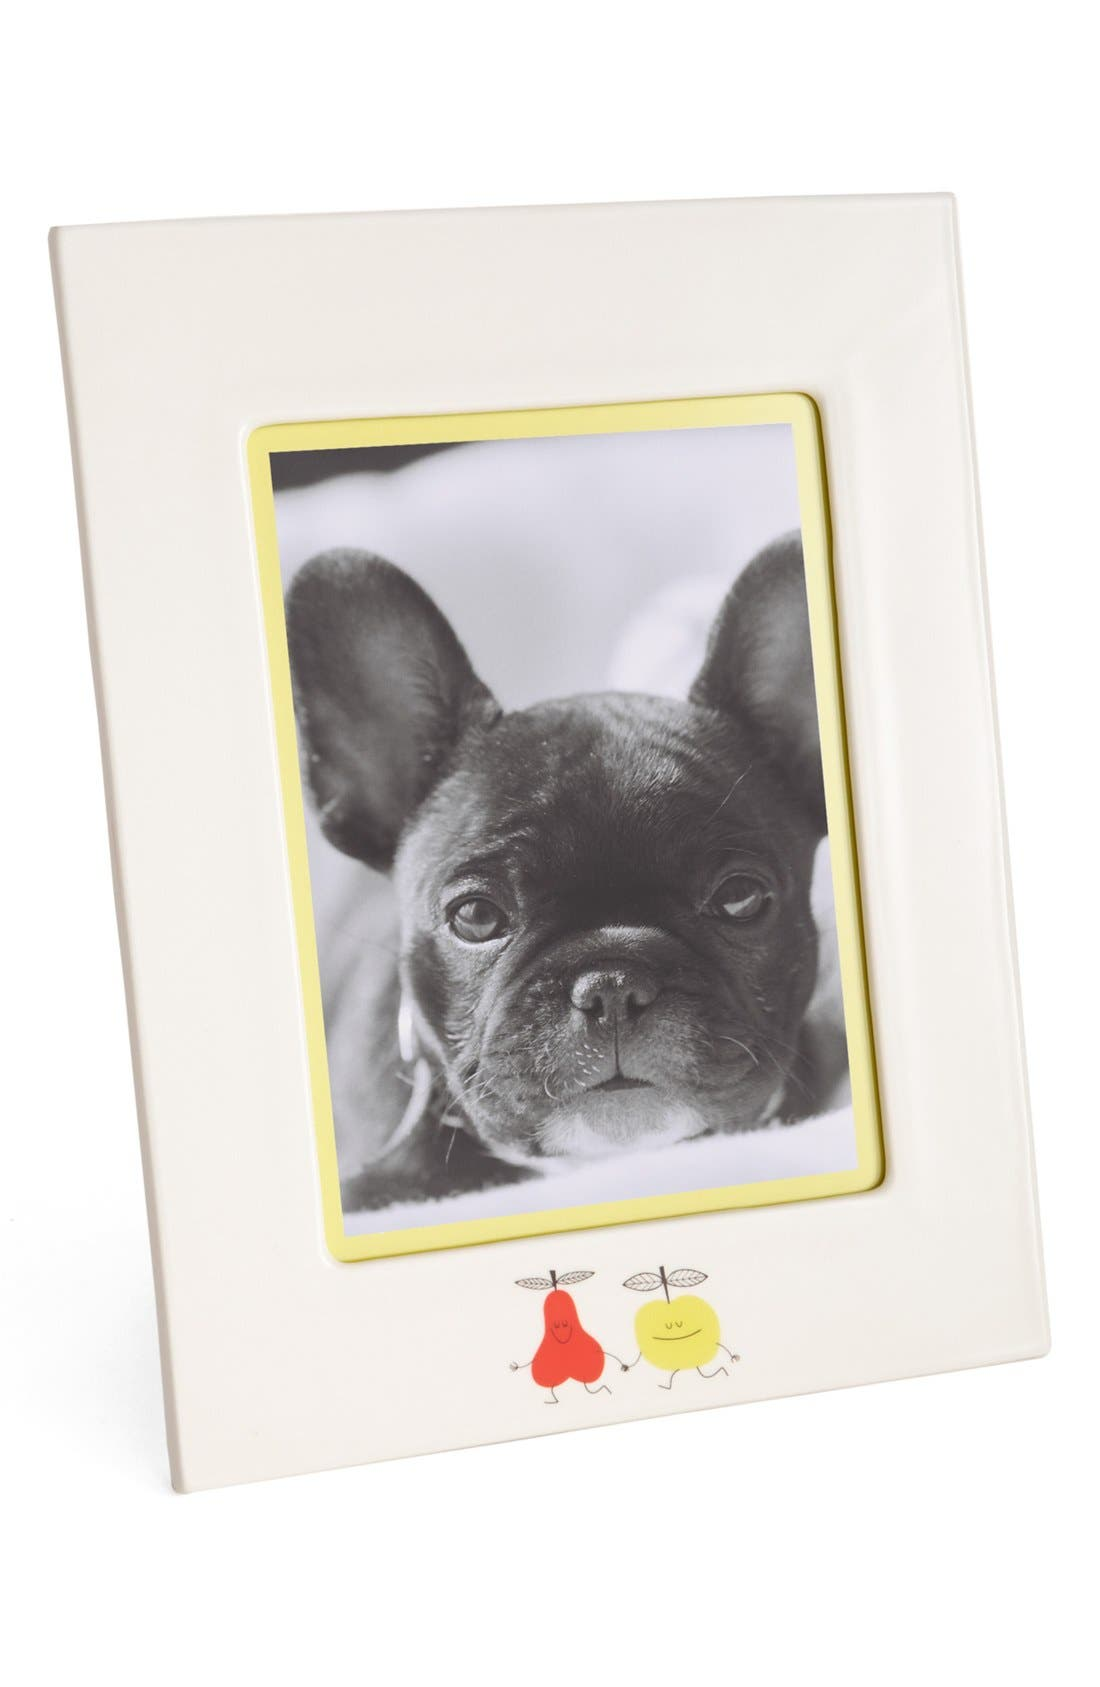 Alternate Image 1 Selected - kate spade new york 'crunch bunch' frame (5x7)